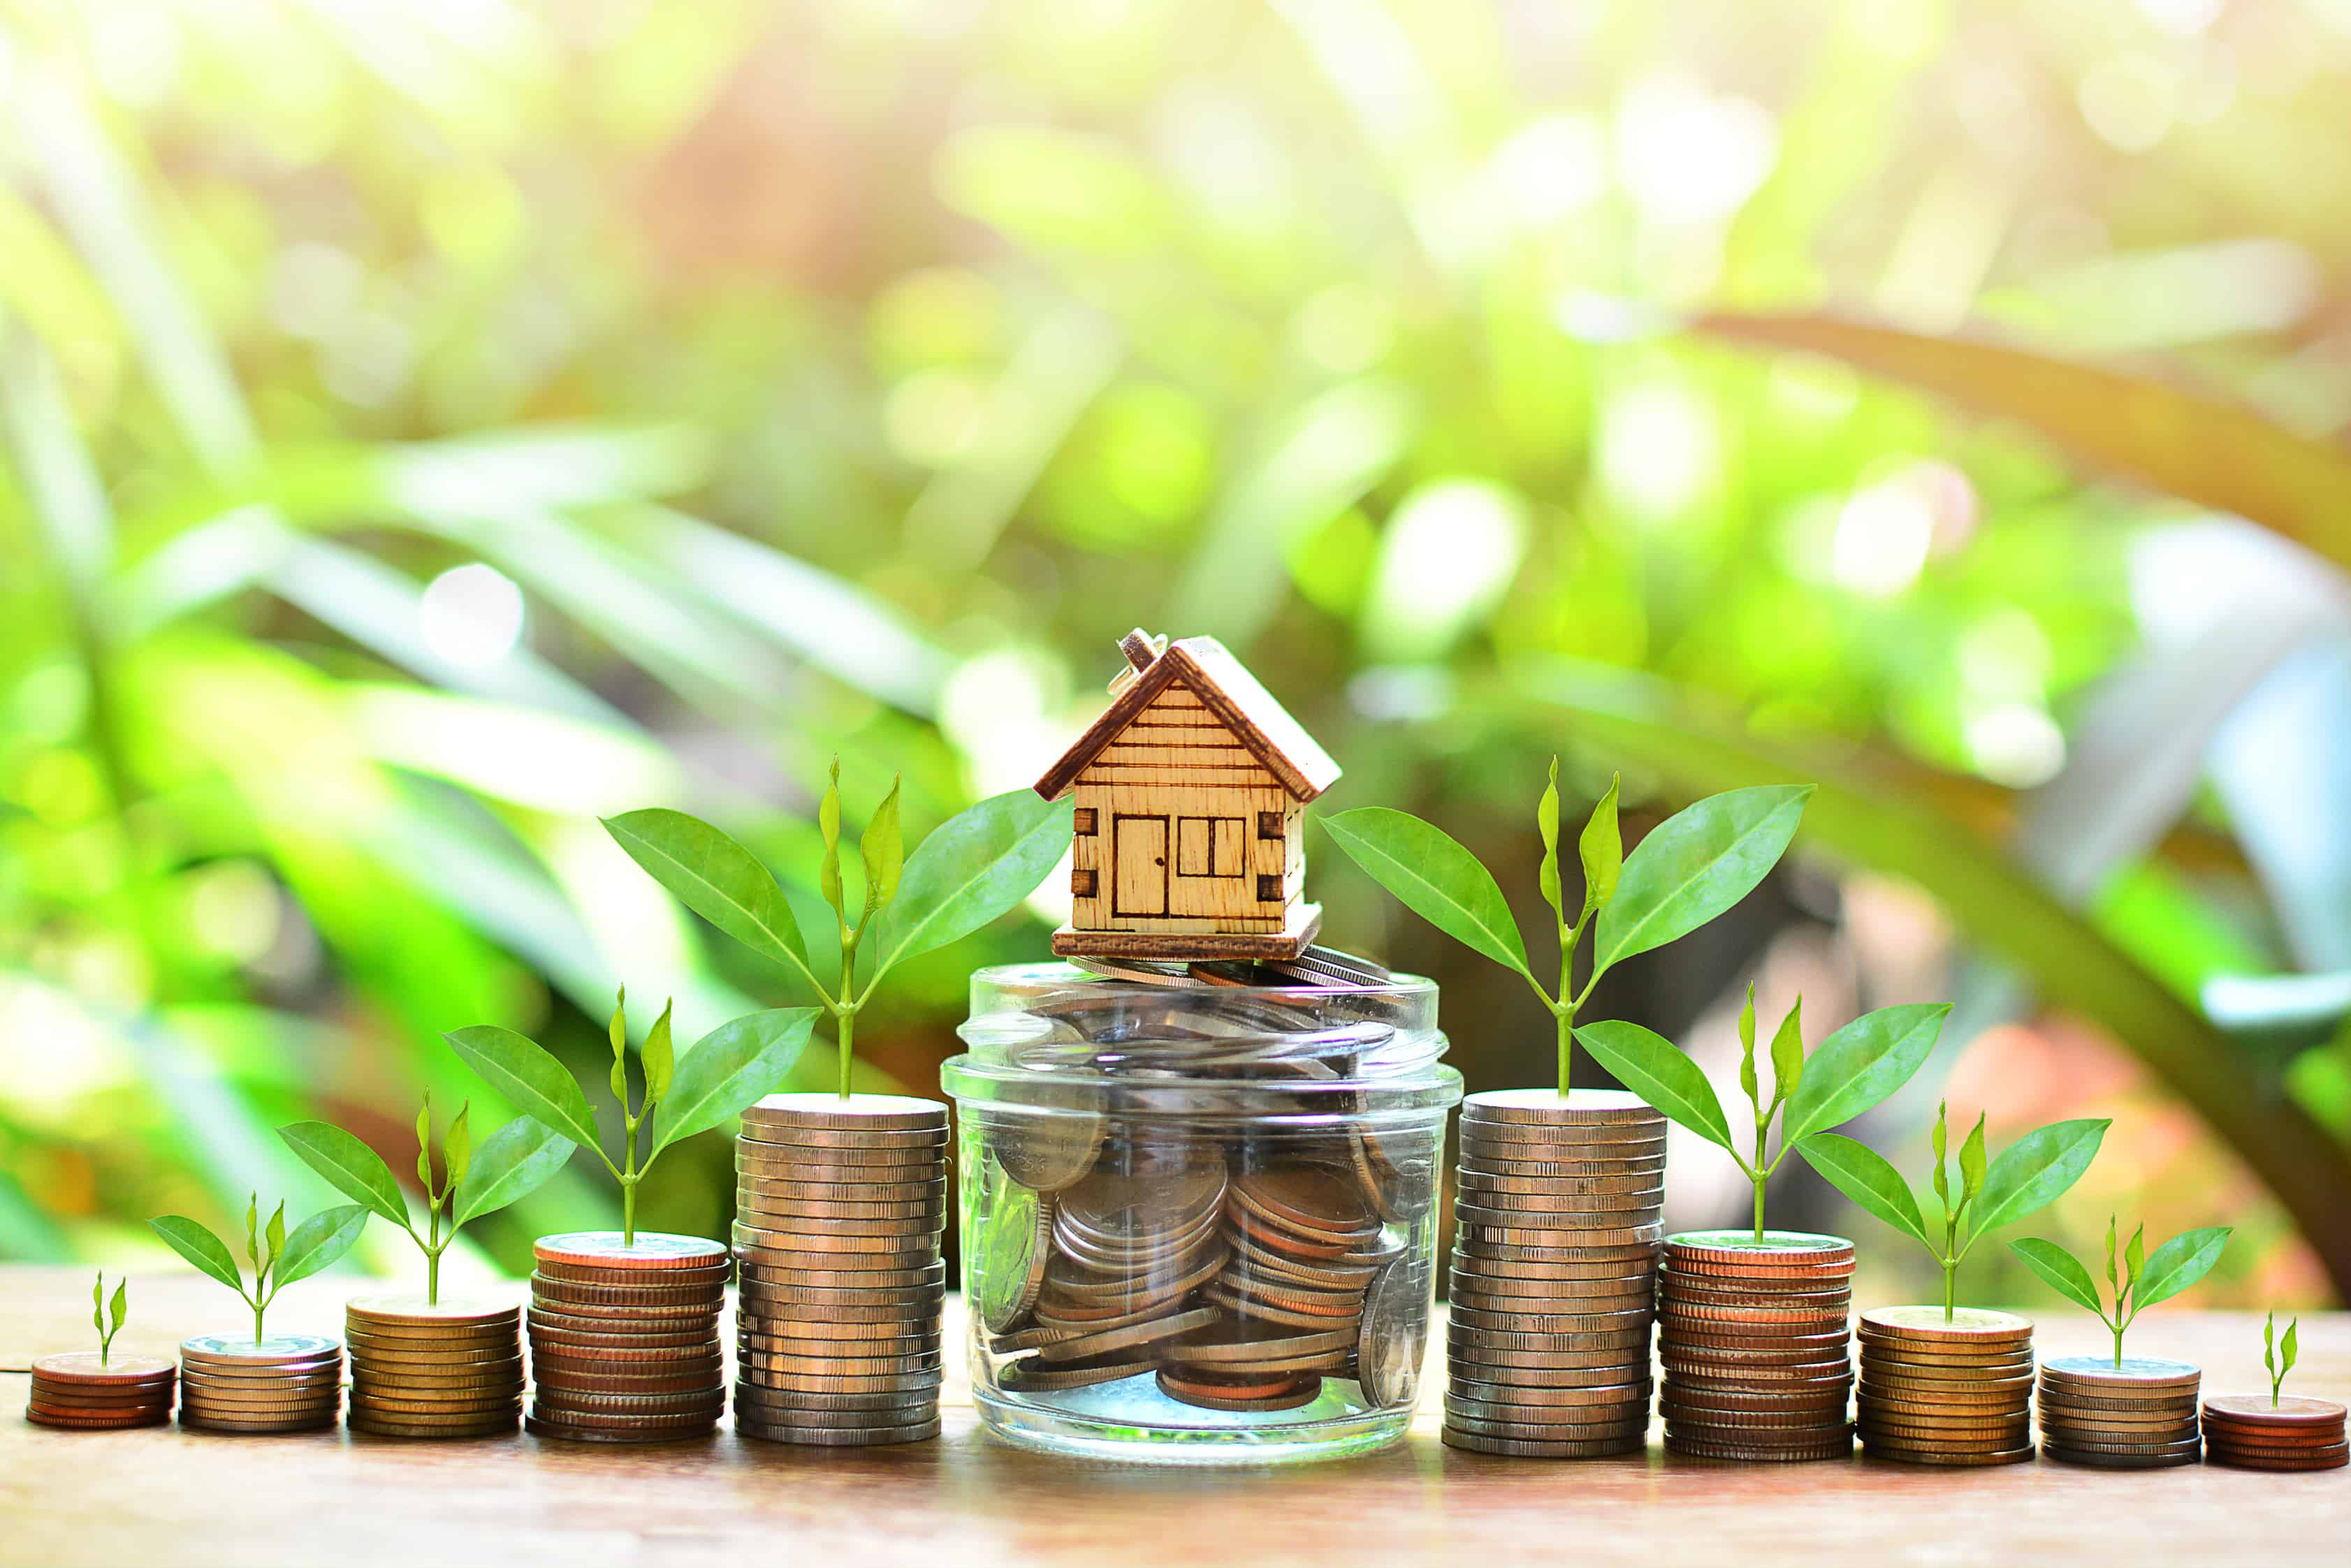 home equity loans; tiny wooden house surrounded by coins and growing plants